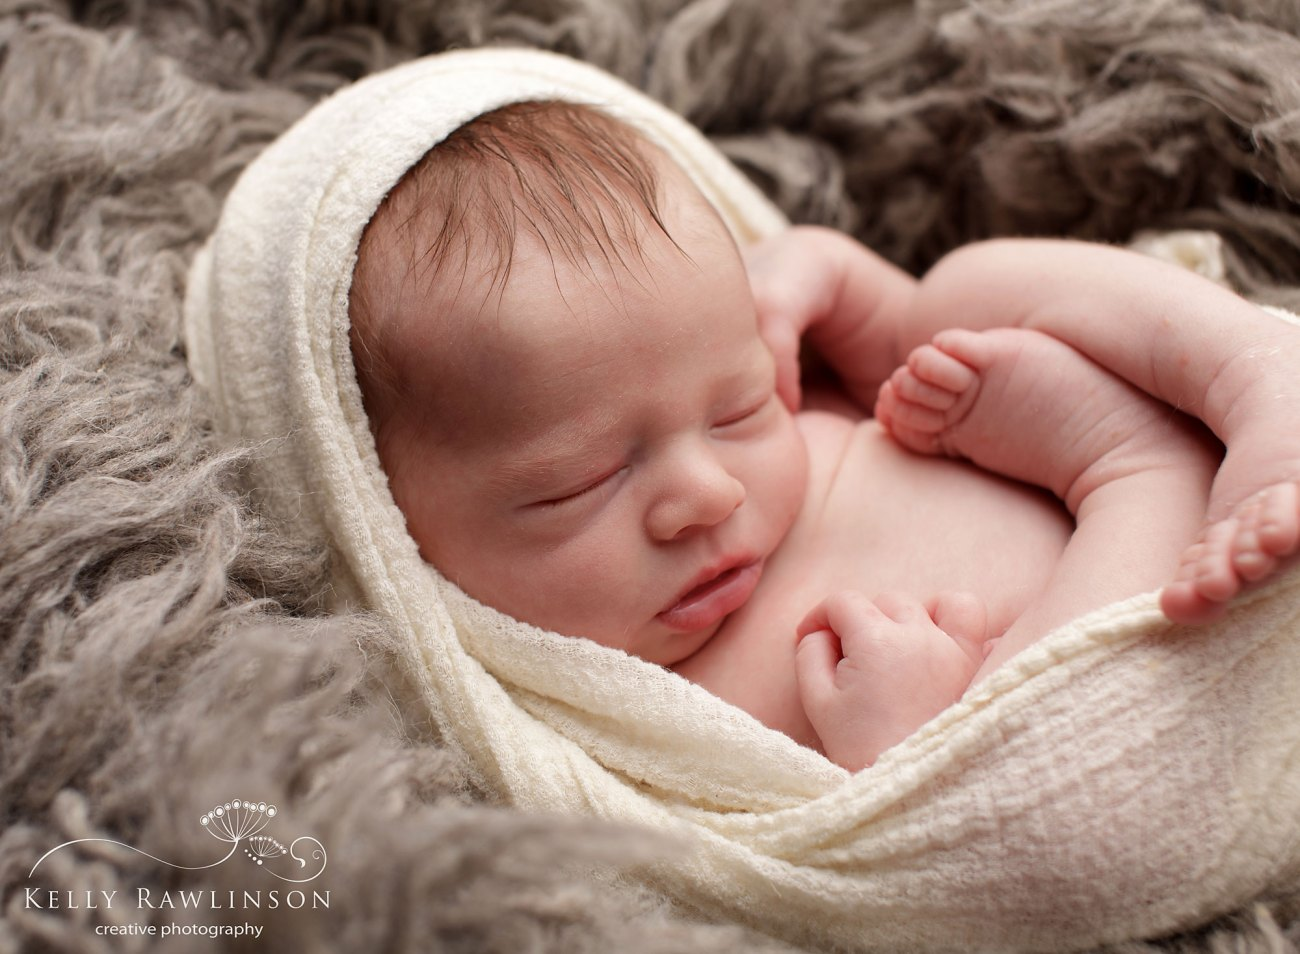 Awesome photo of baby wrapped in swaddle